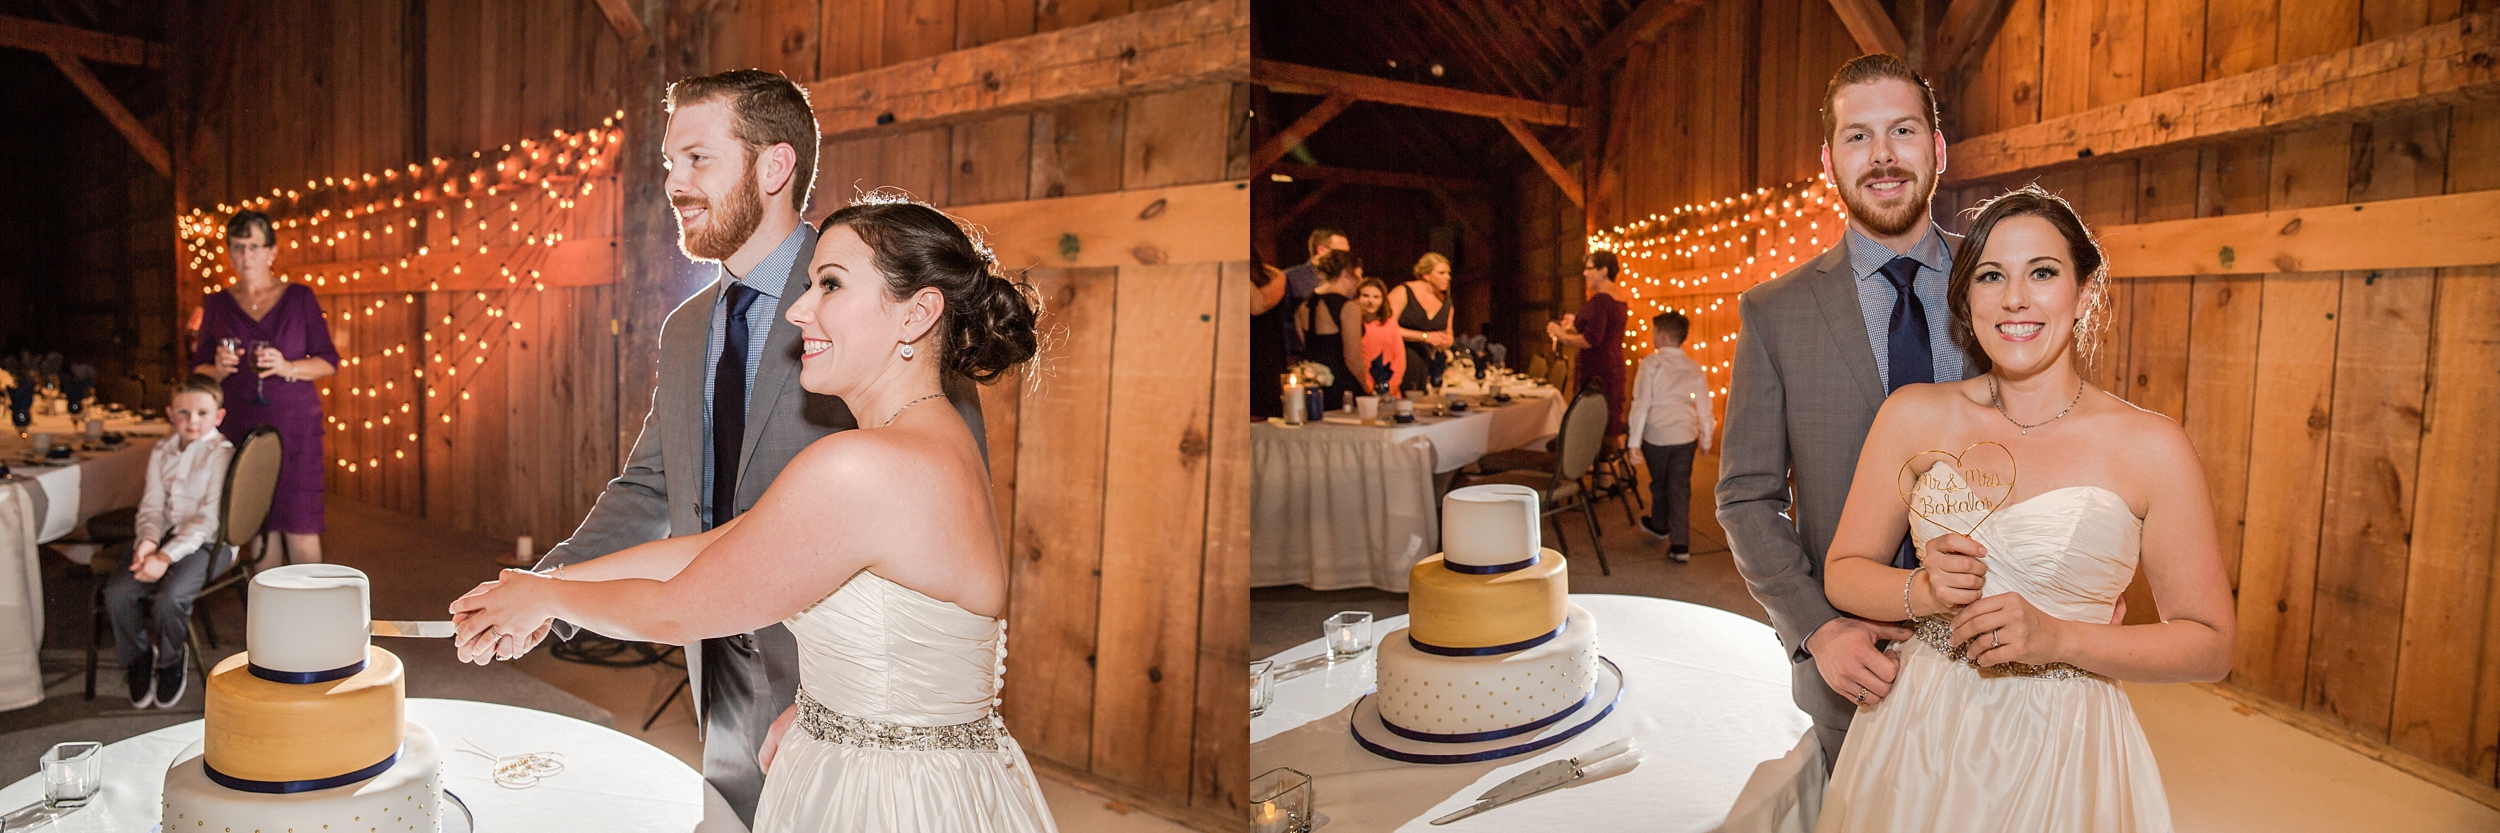 countryheritagebarn-wedding_0089.jpg